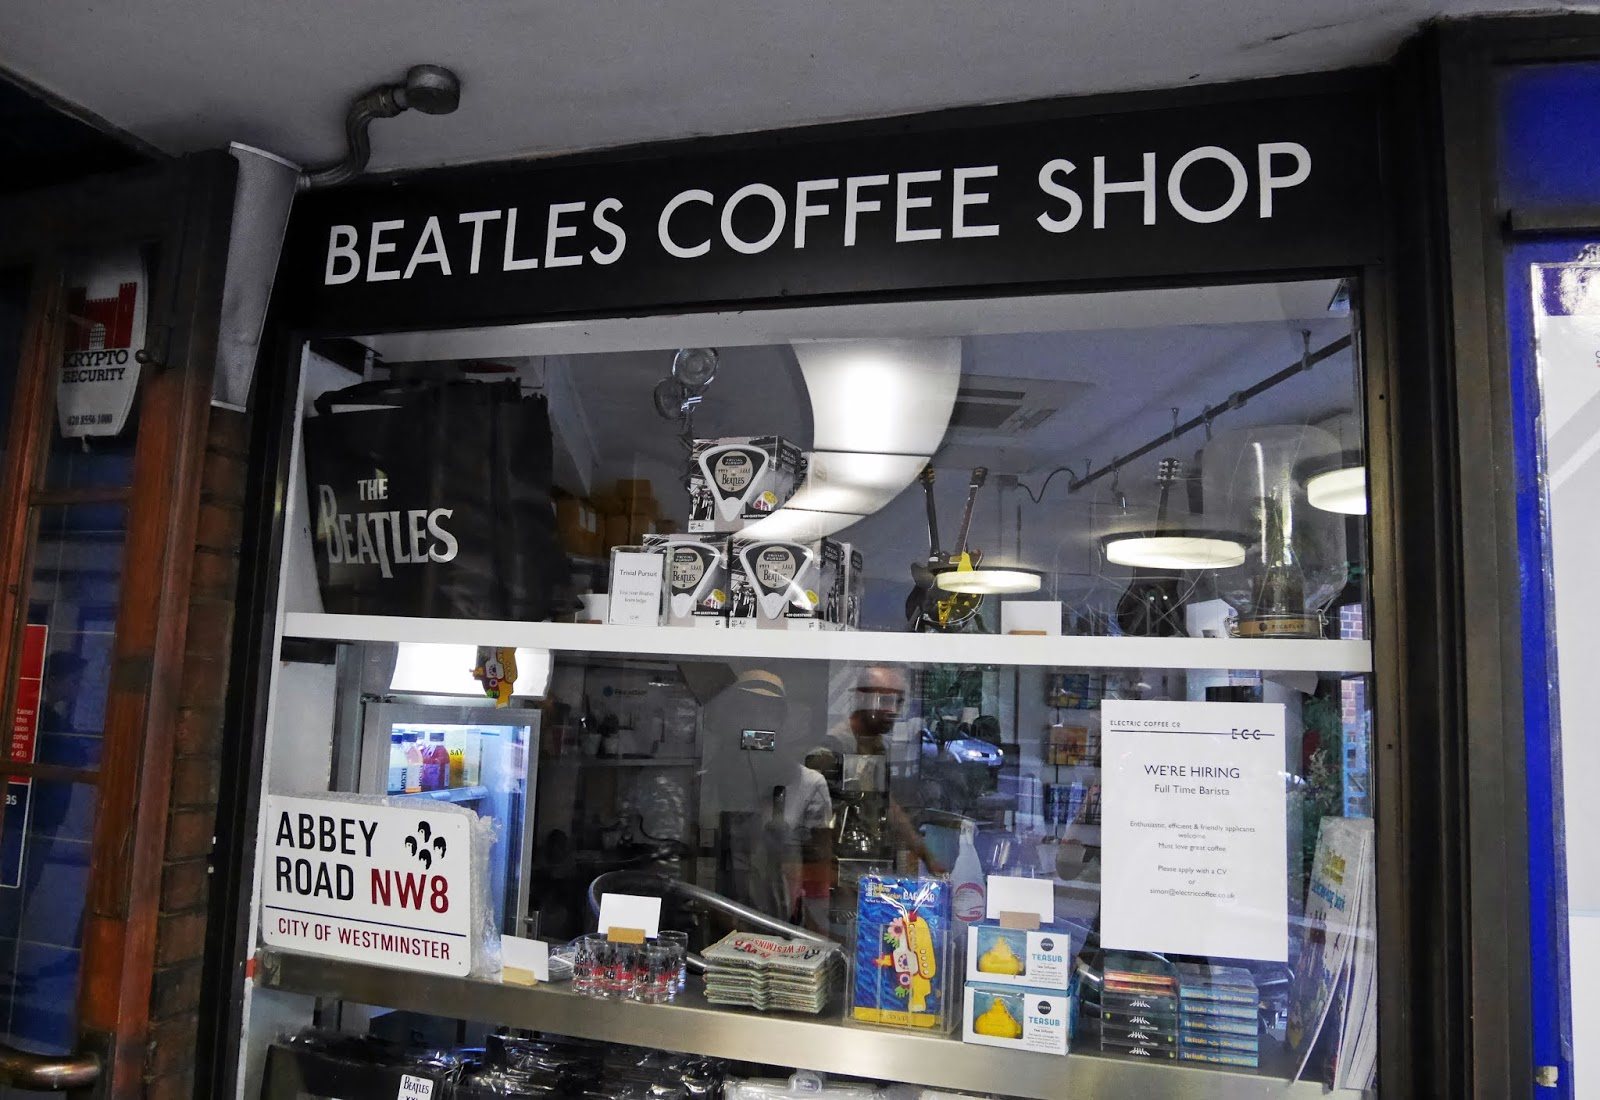 Beatles Coffee Shop at St John's Wood tube station near Abbey Road